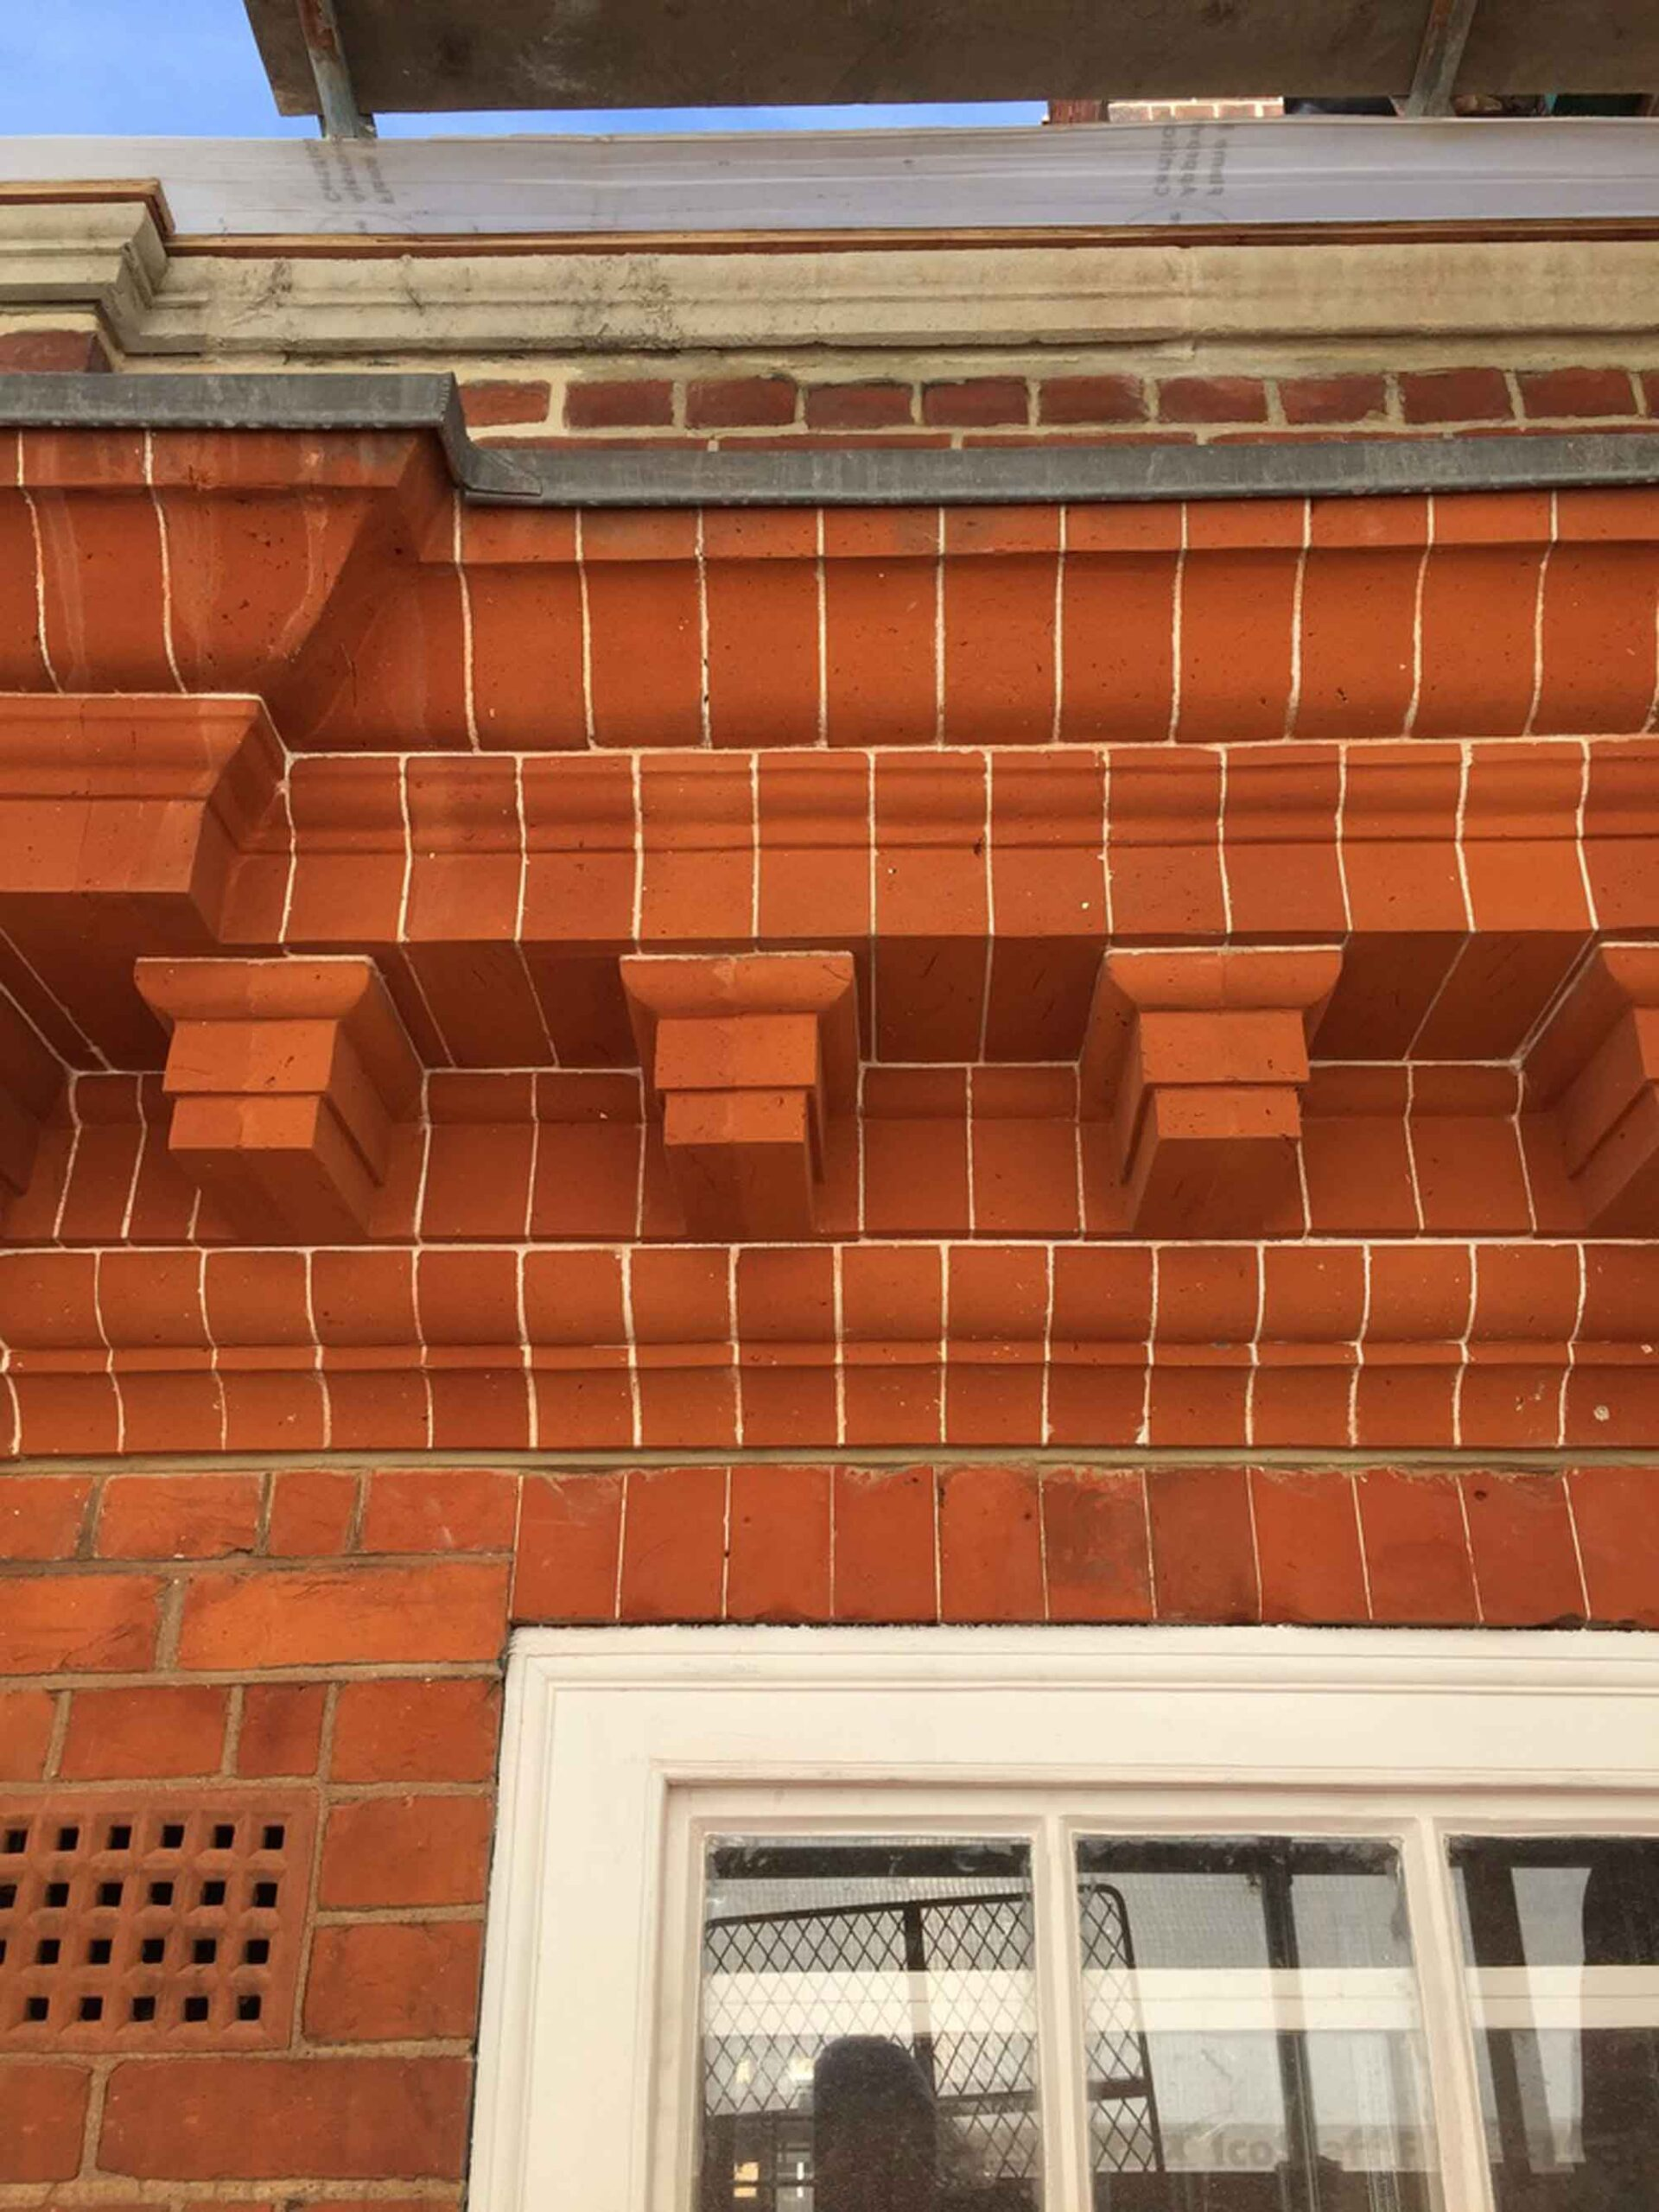 westminster-fire-station-openstudio-architects-existing-brick-details